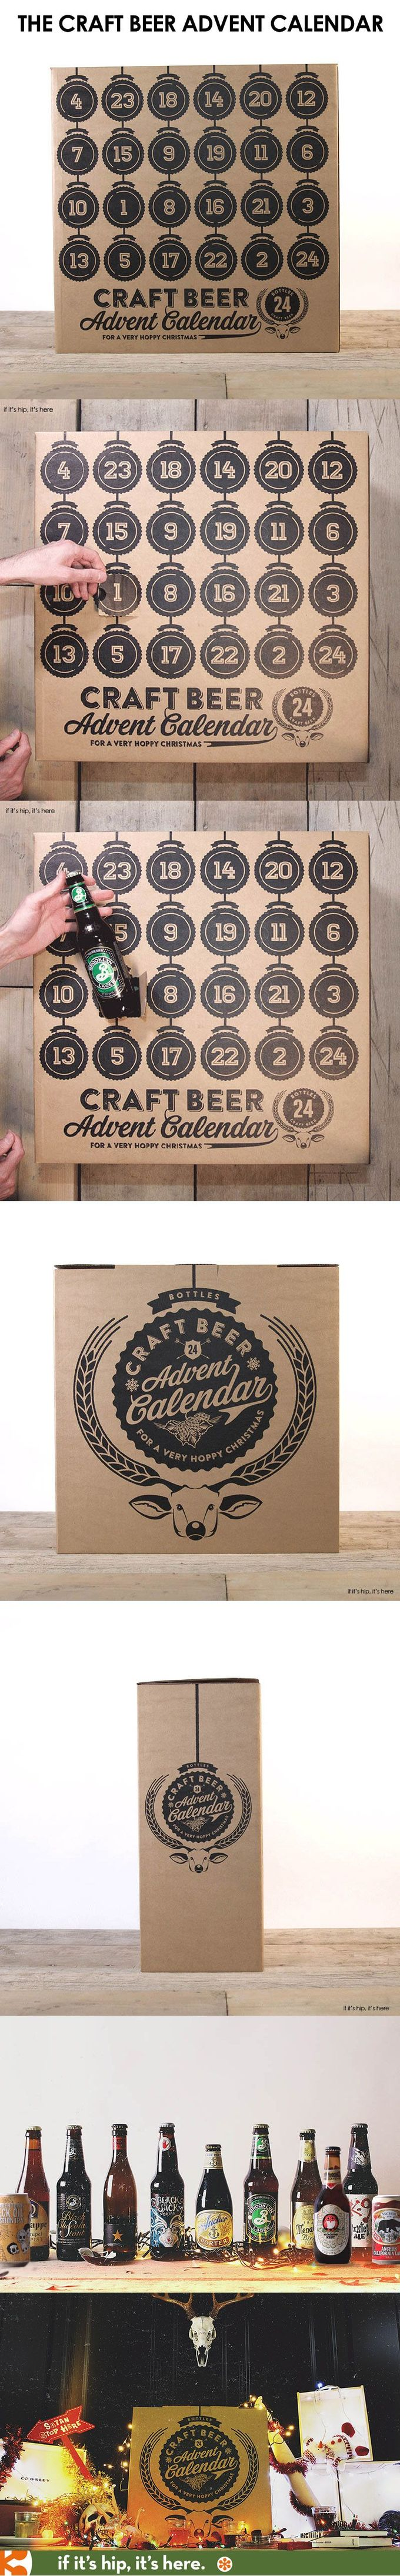 The Christmas Craft Beer Advent Calendar is a festive way to countdown to the Holidays! PD